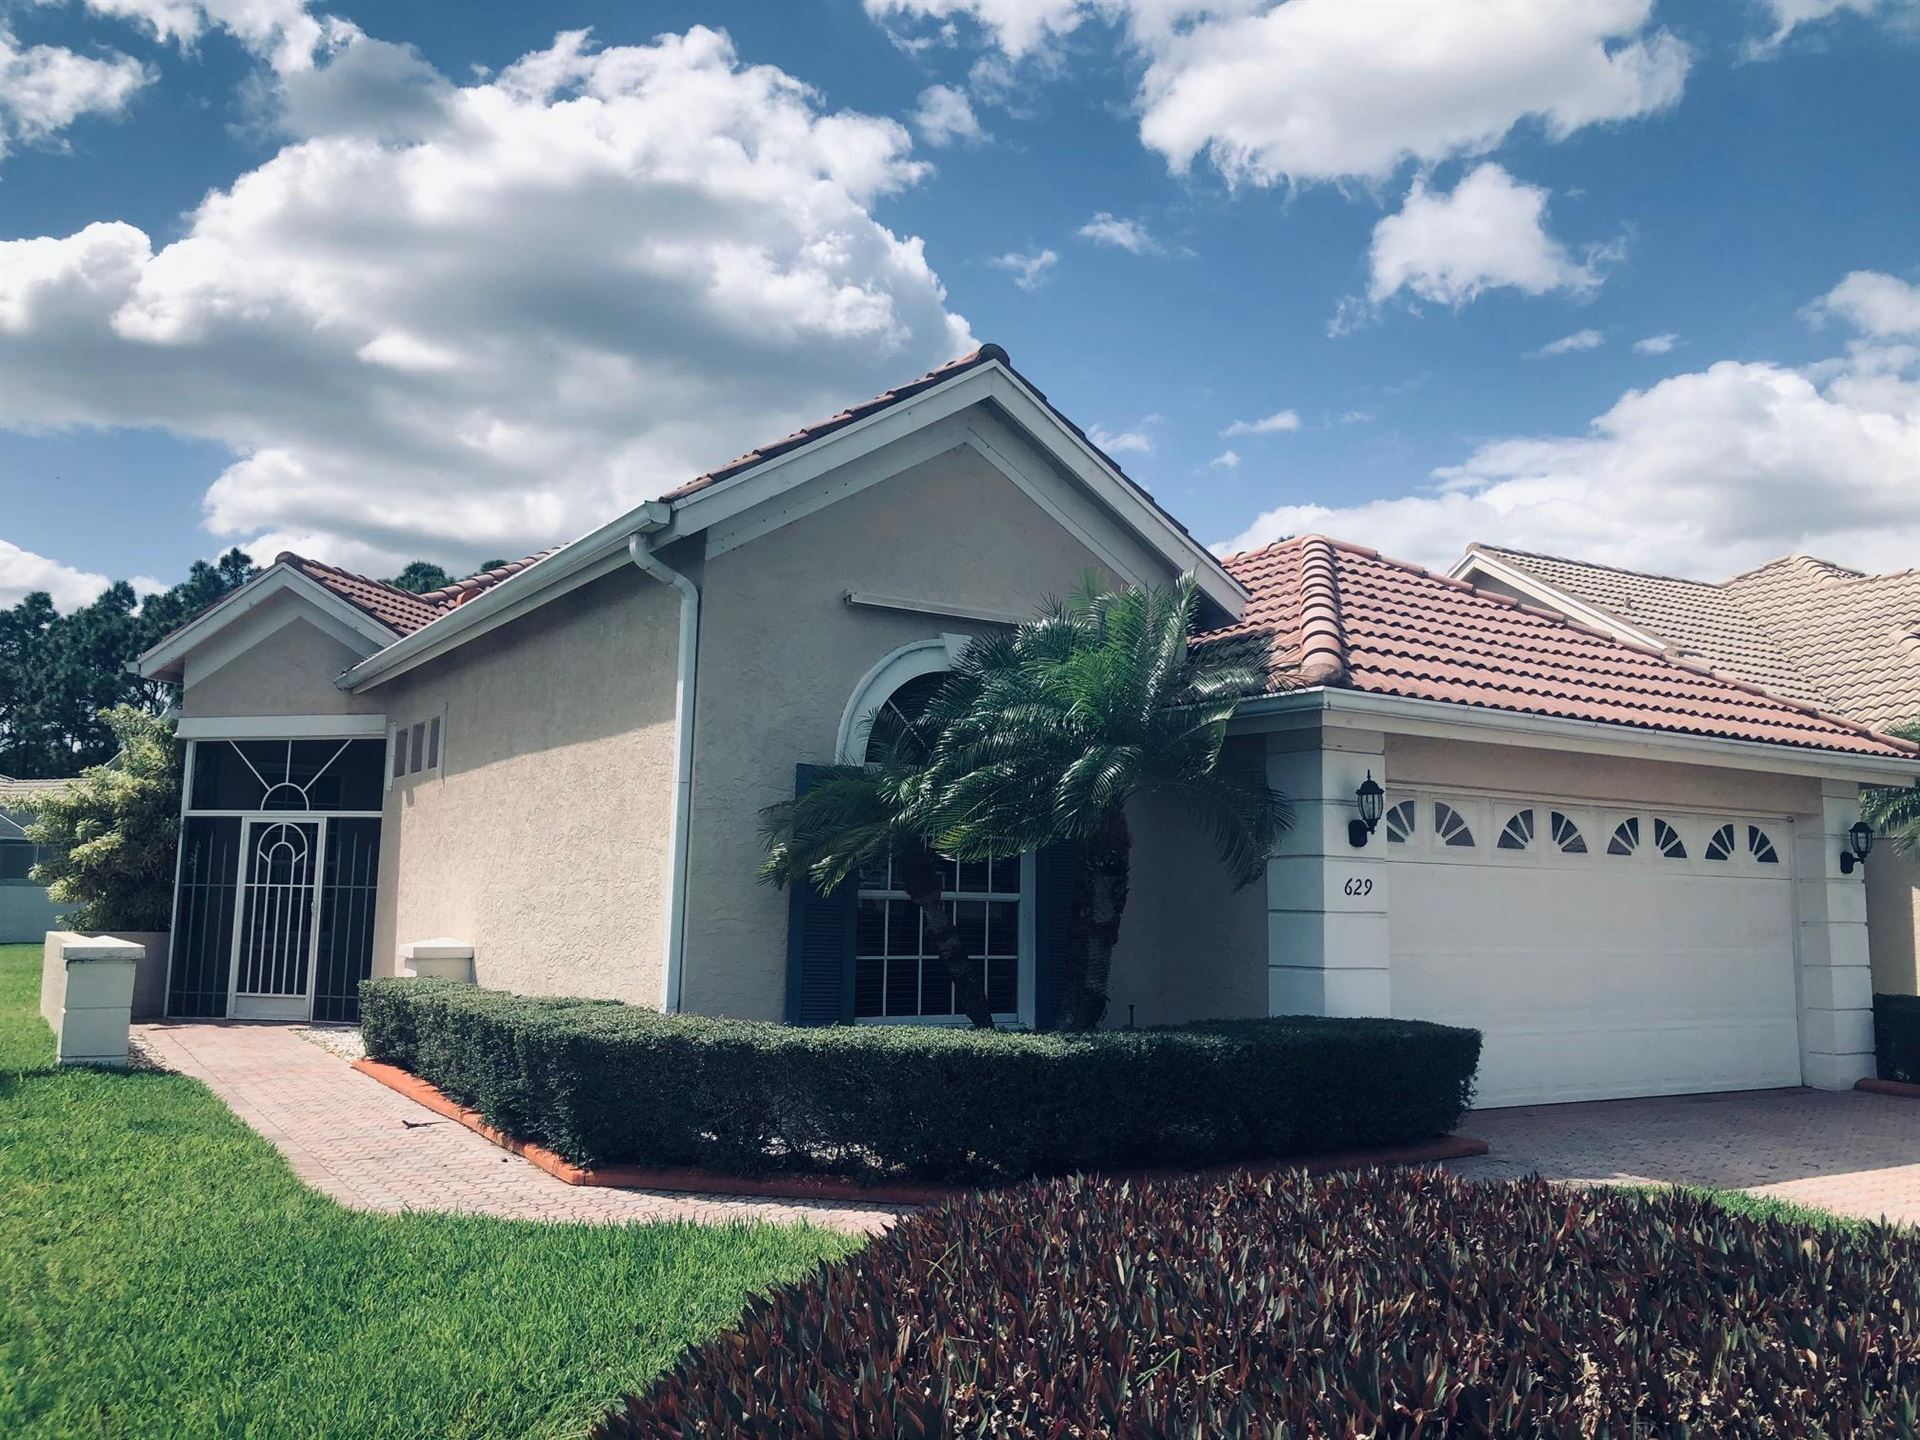 629 SW Andros Circle, Port Saint Lucie, FL 34986 - #: RX-10679837